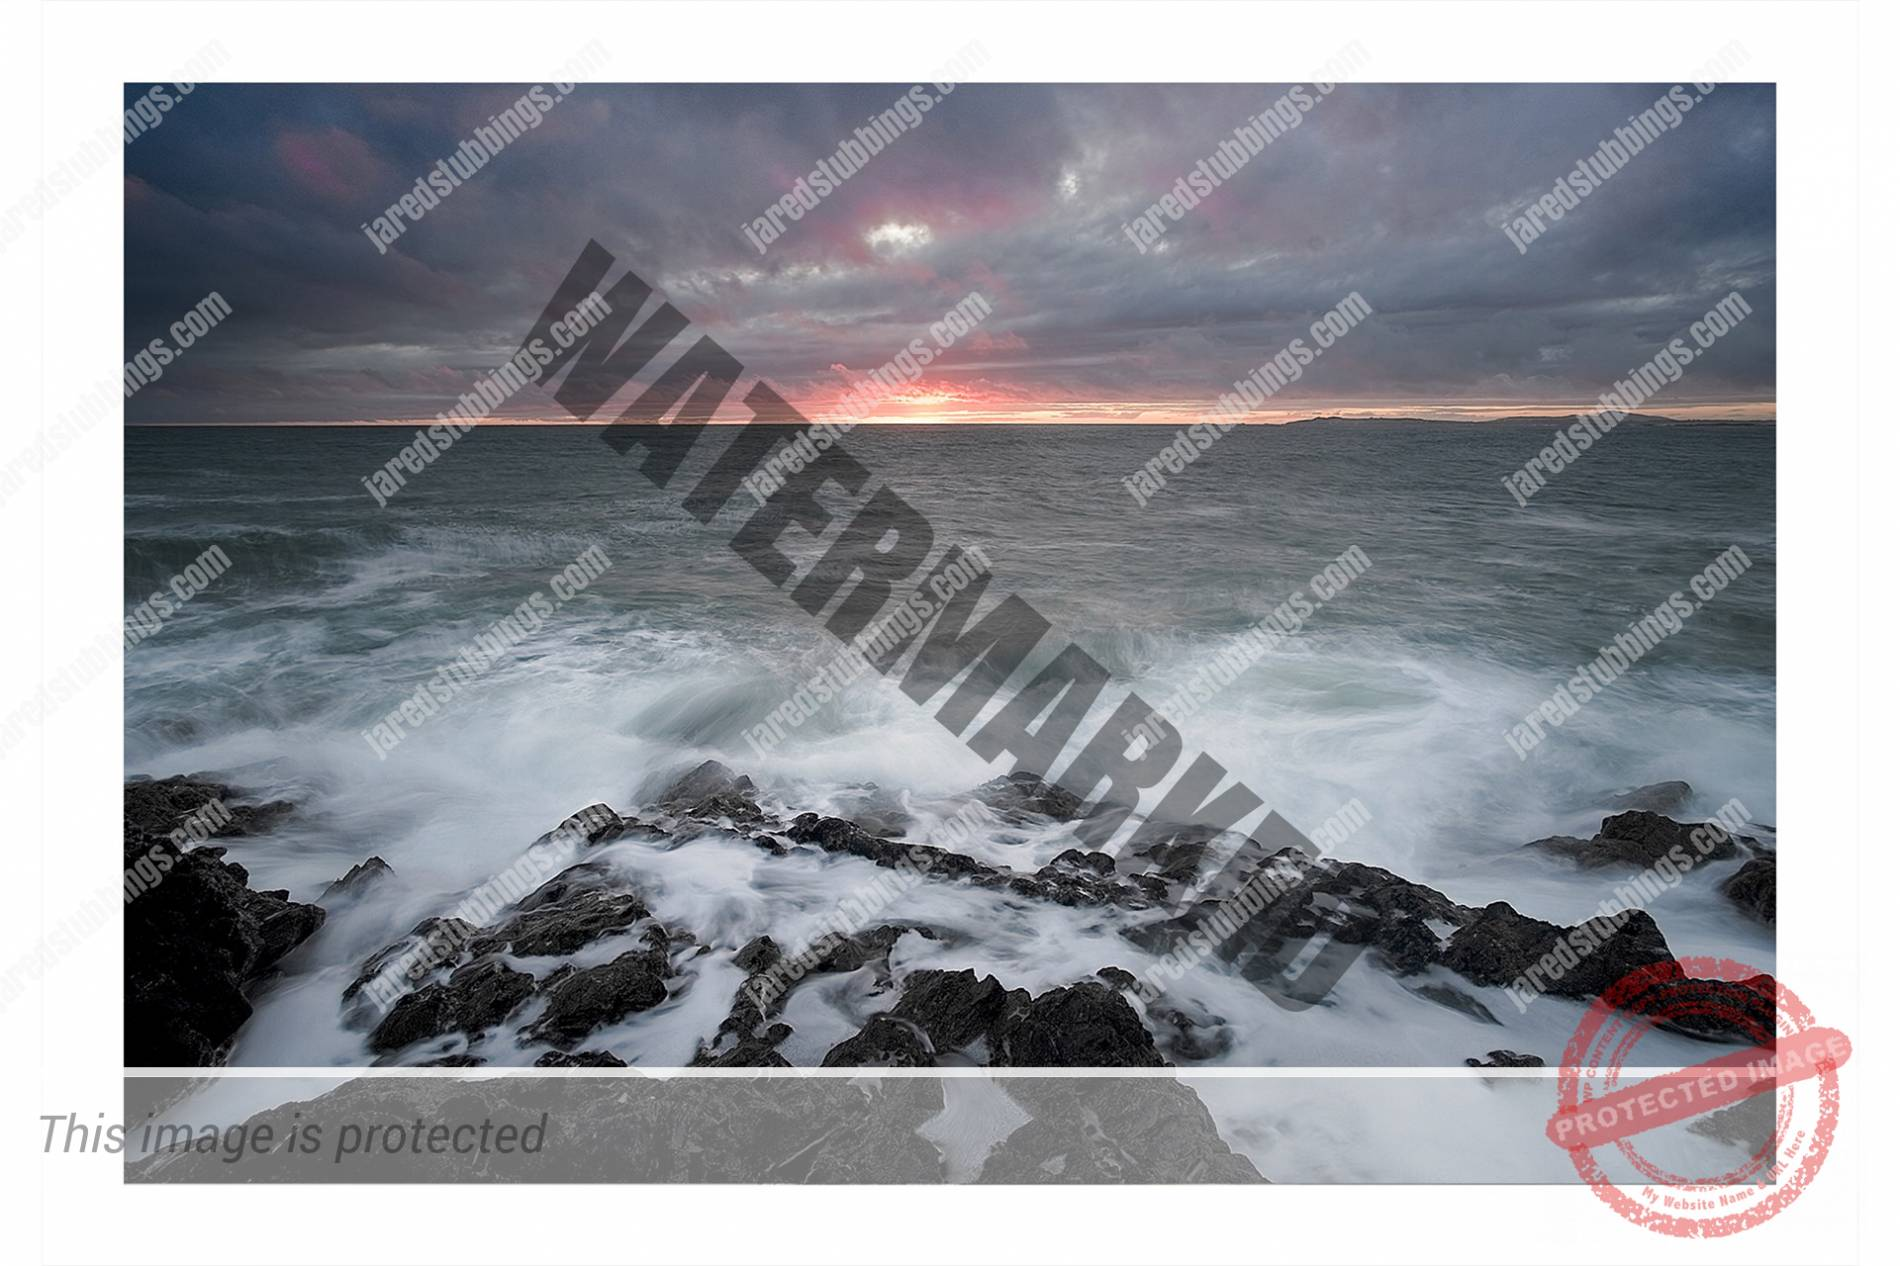 Image of stormy sunset by Jared Stubbings